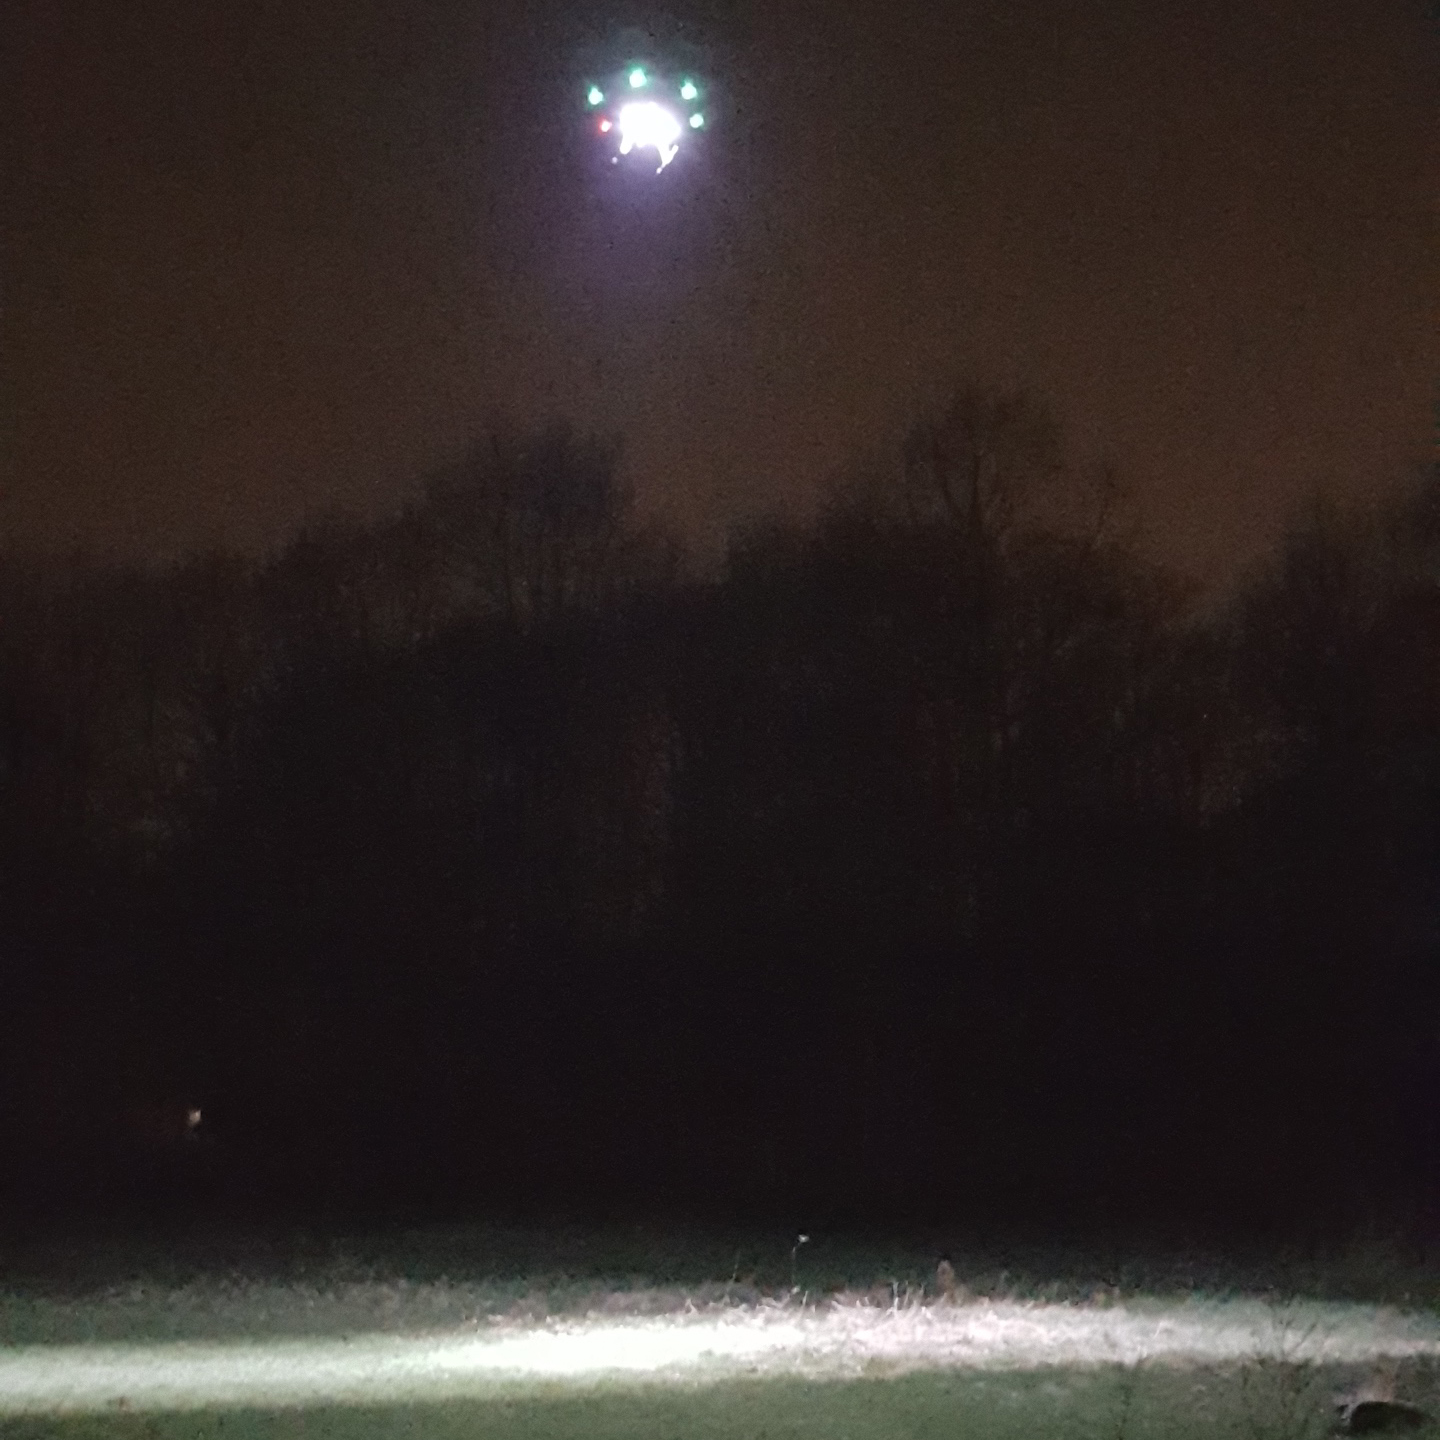 LED drone search and rescue